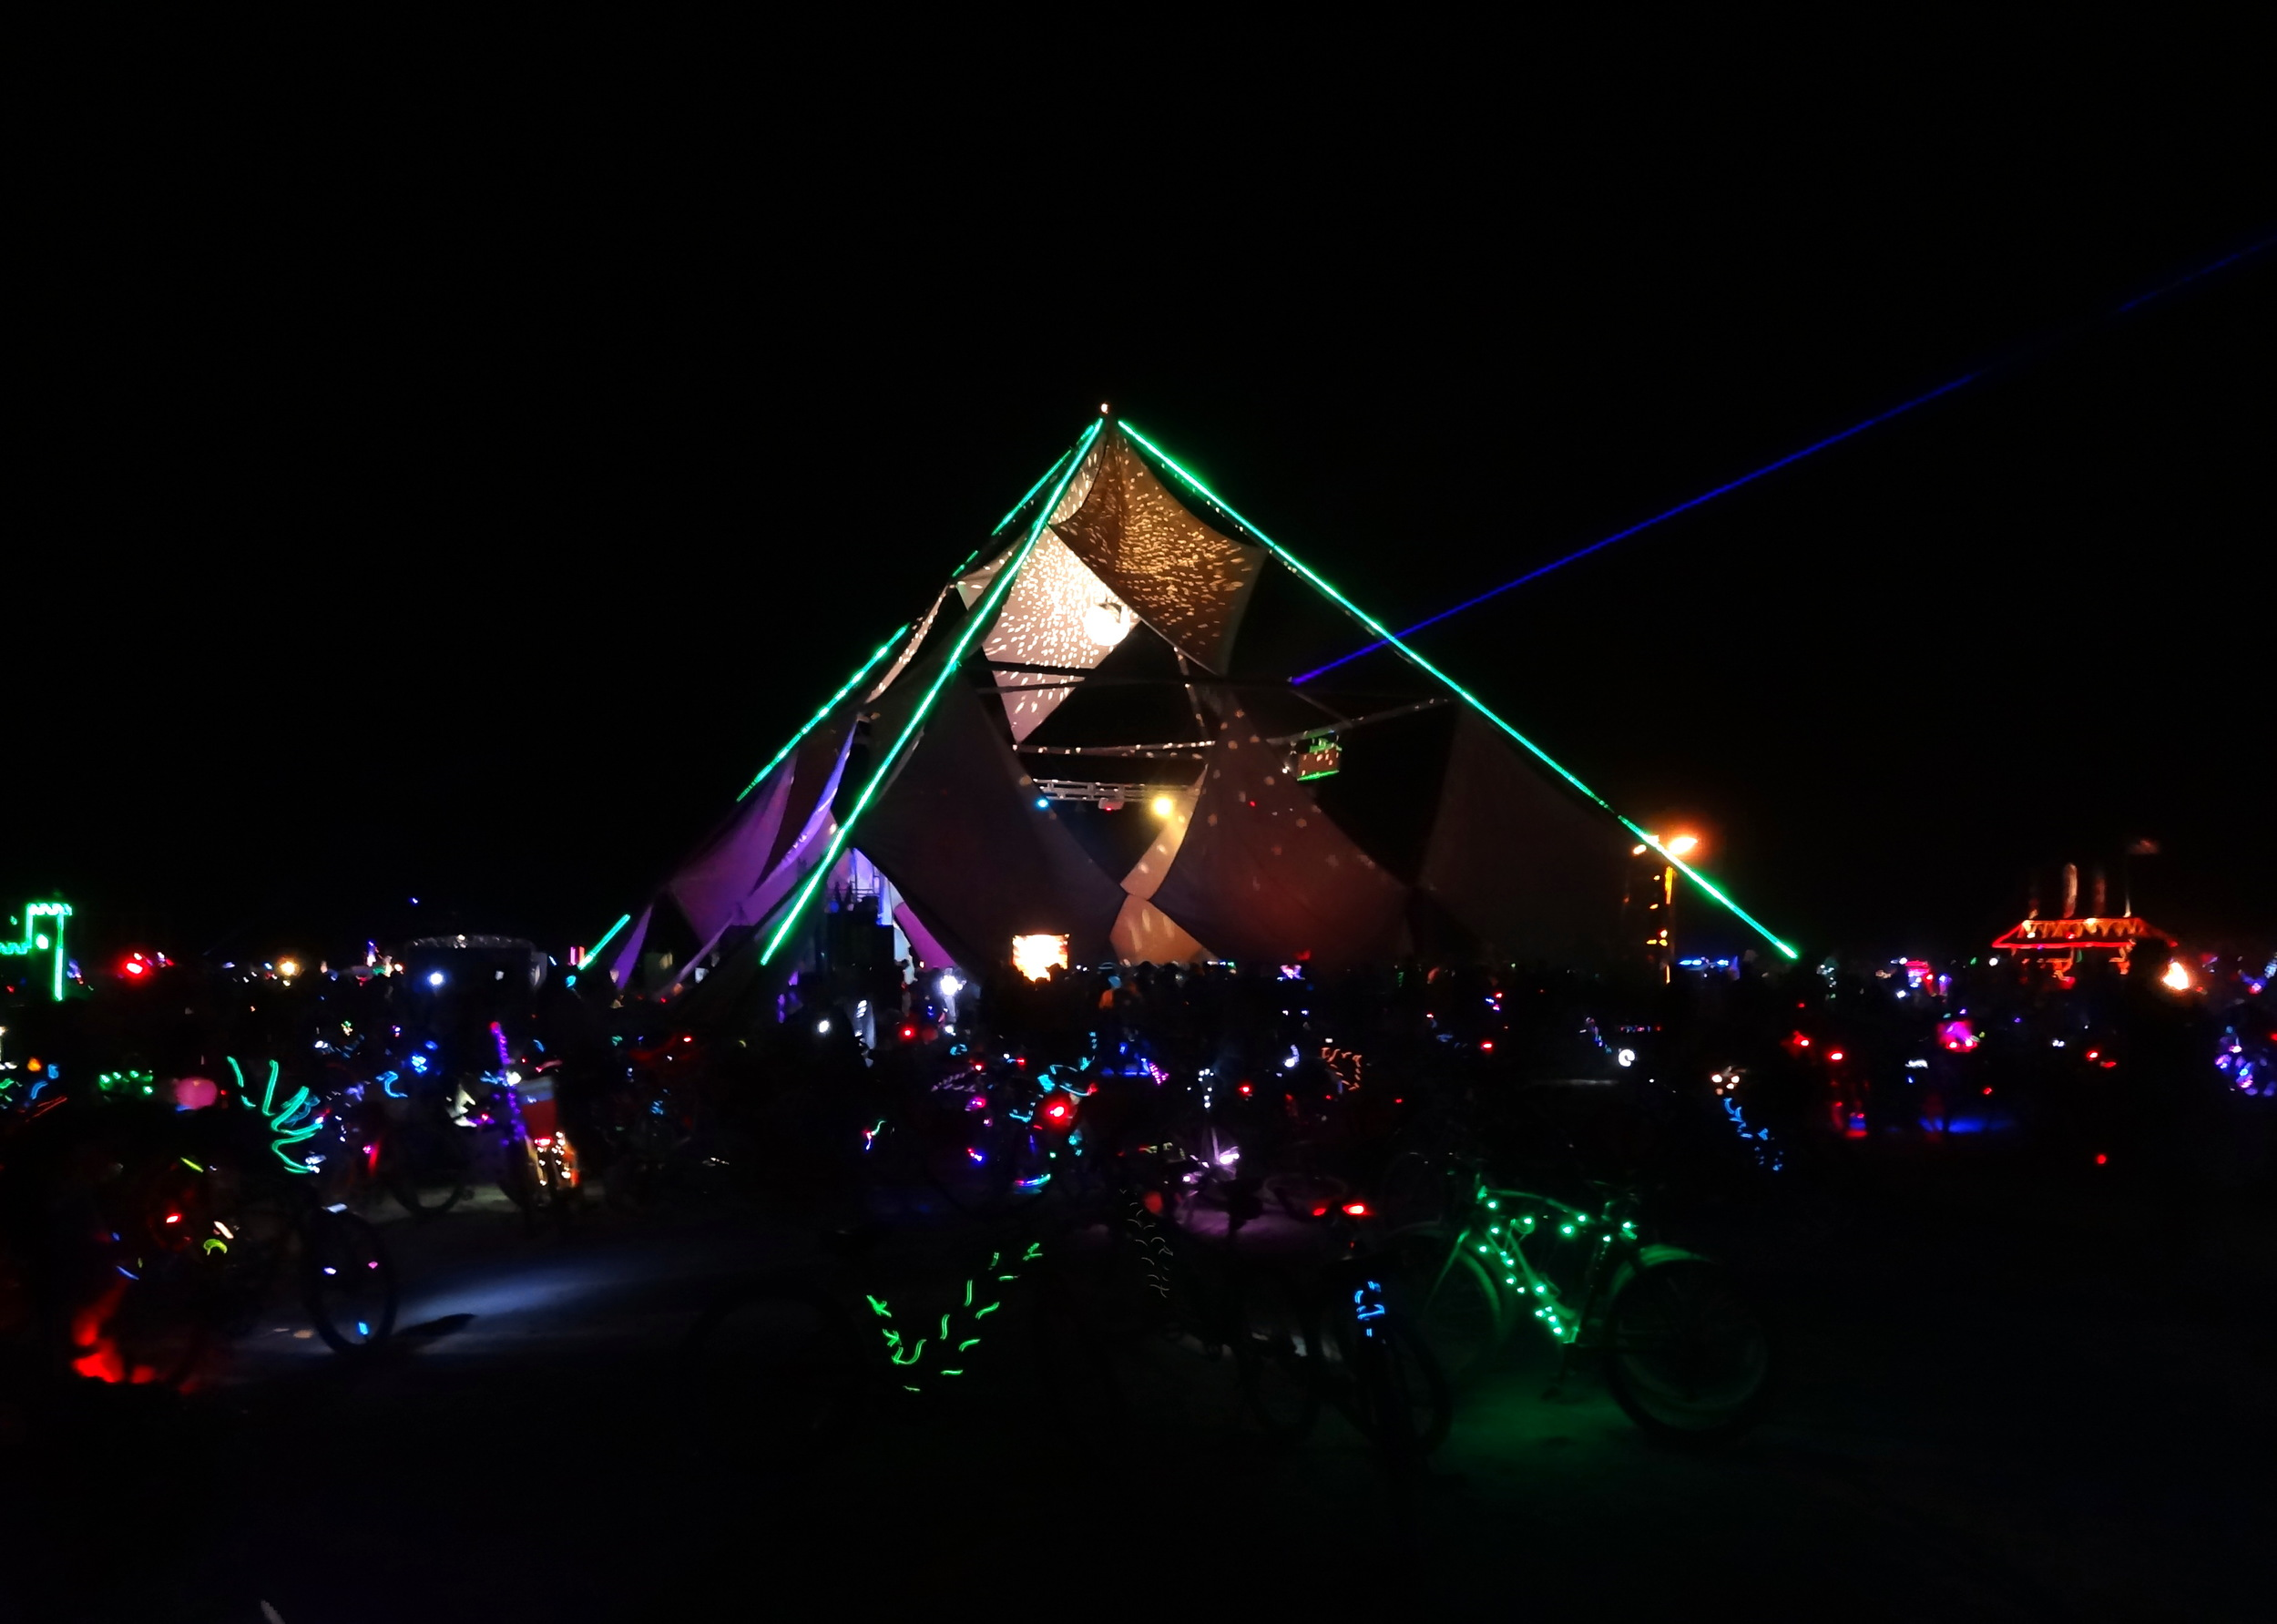 Dancers enjoy the music at Osiris, one of the largest camps. Intermittent fire would ignite from the pyramid's apex, lighting up the dancefloor like it was daytime.